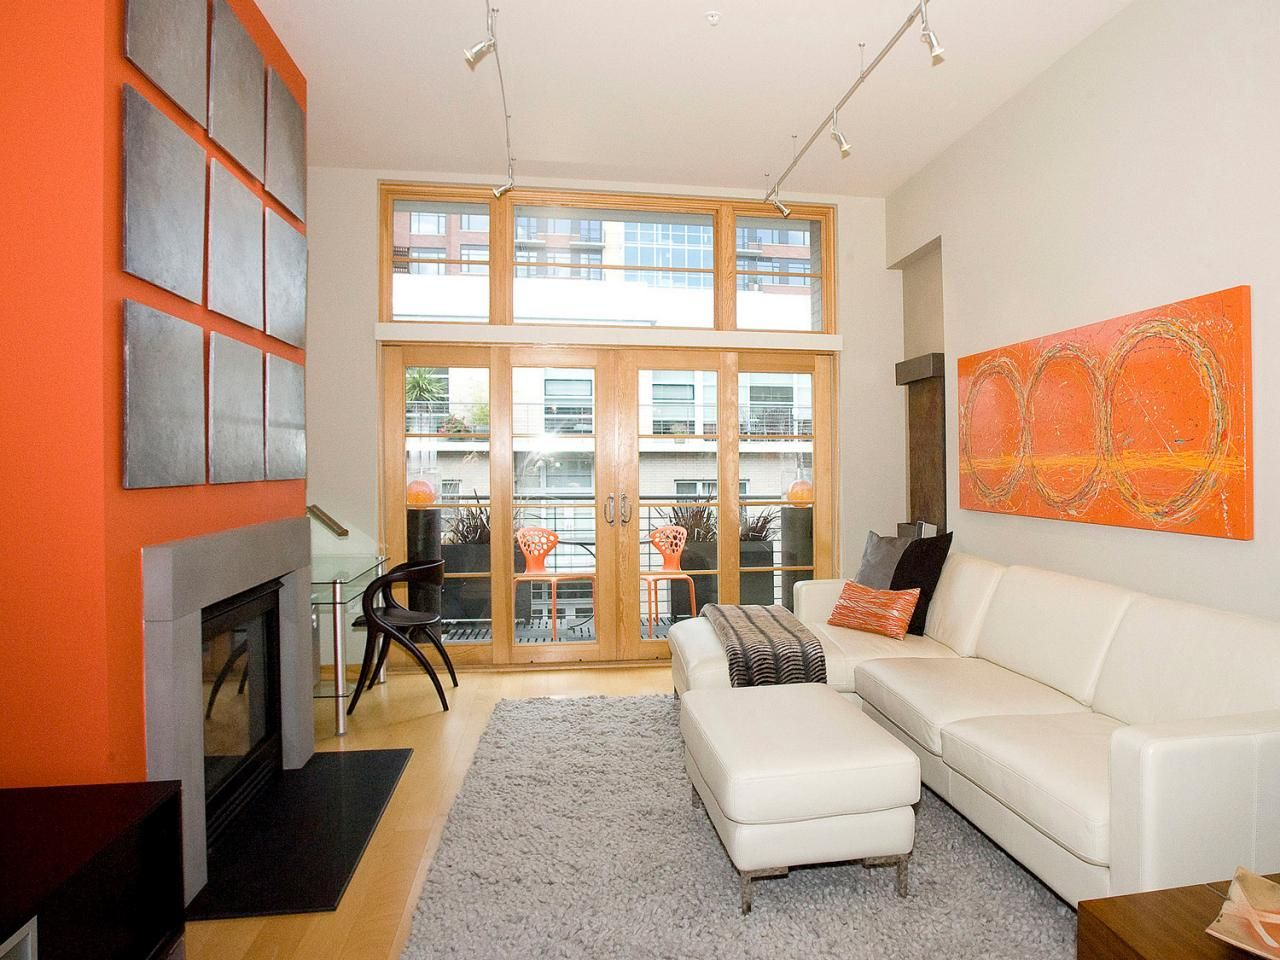 Neon decorating ideas orange design orange walls and modern lofts